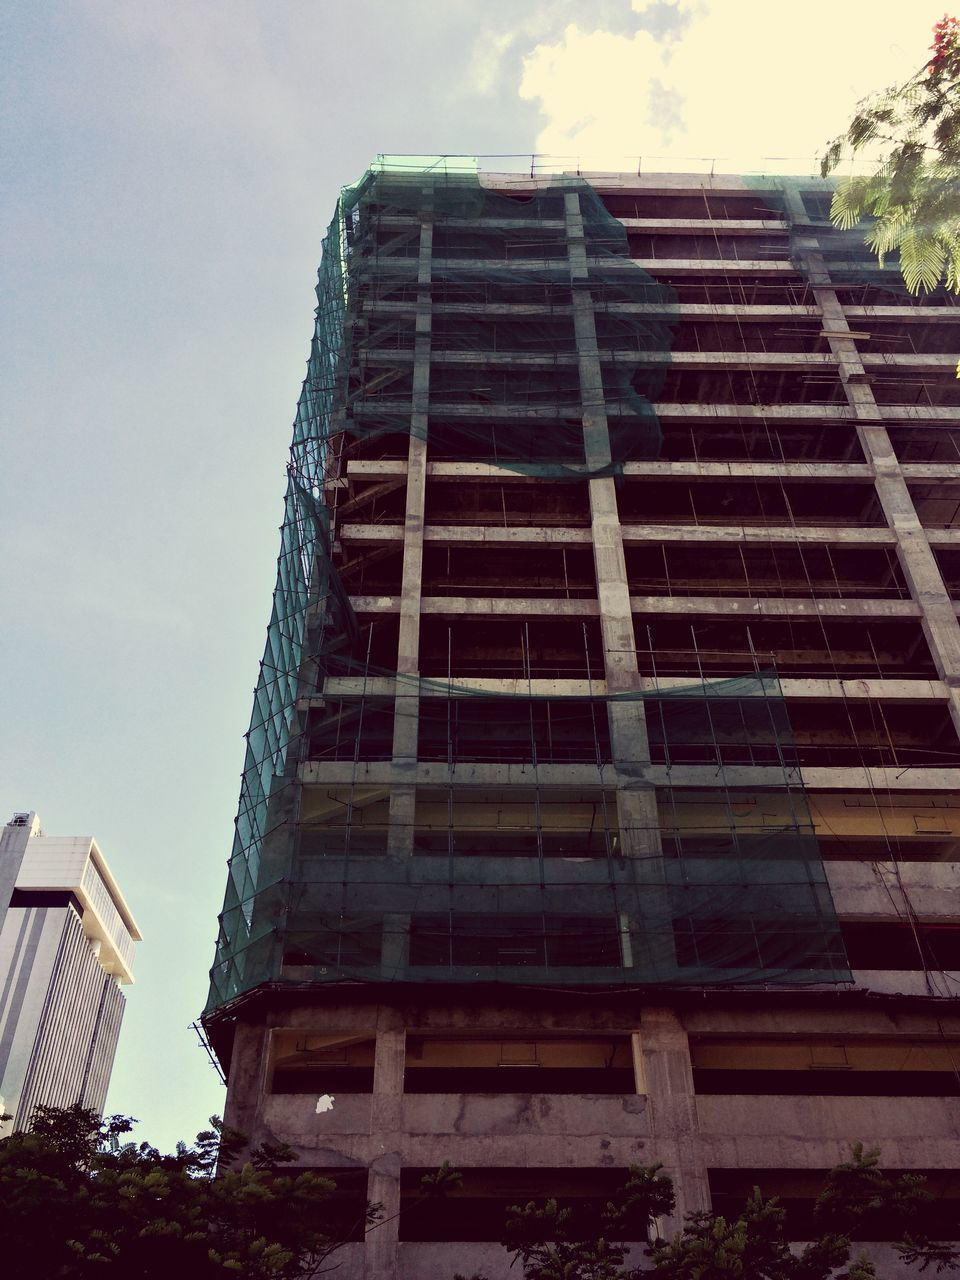 built structure, building exterior, low angle view, architecture, sky, outdoors, day, no people, city